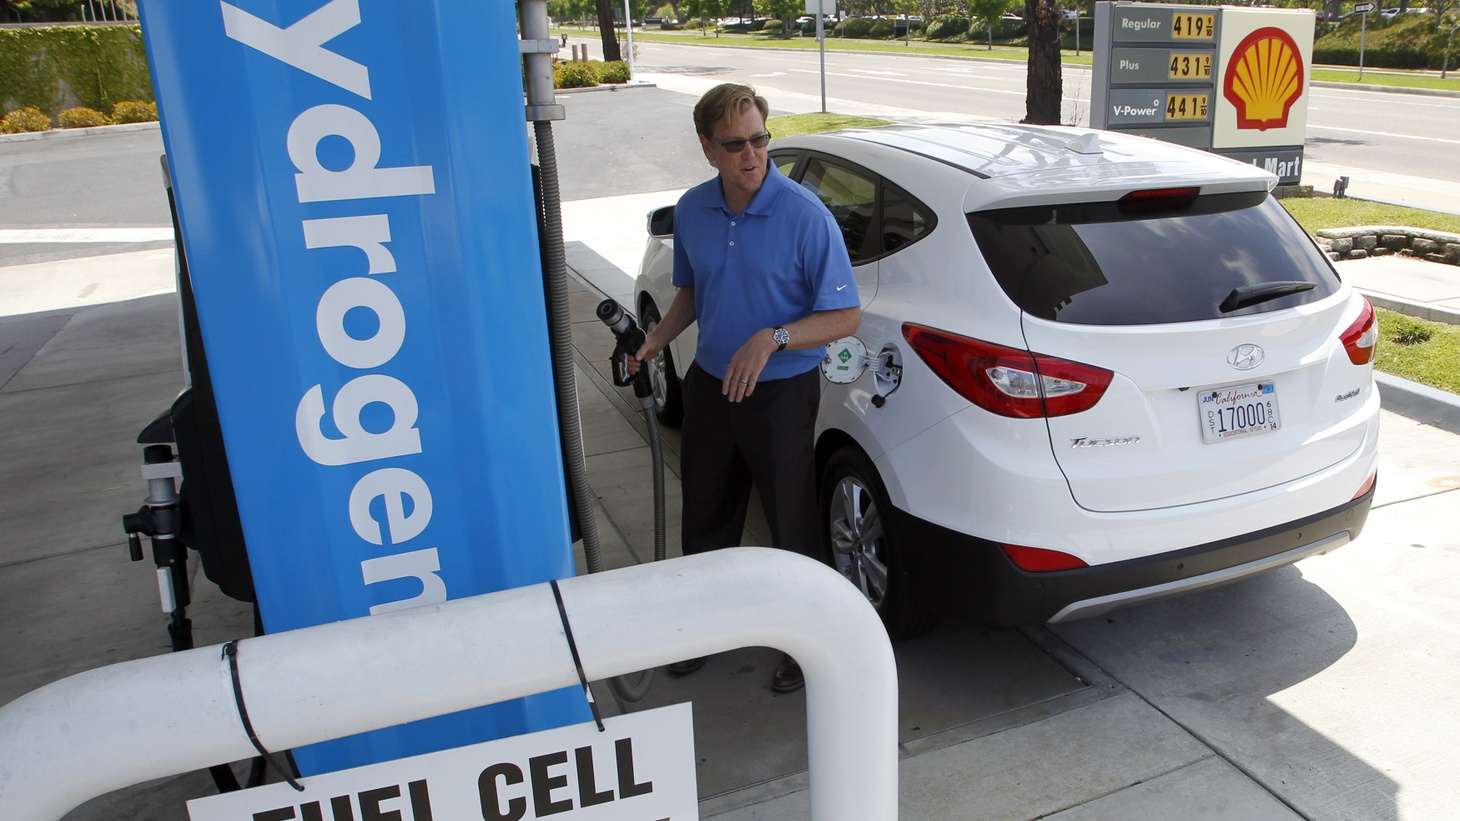 A Hyundai Tucson hydrogen fuel cell electric vehicle is filled at the pump by Derek Joyce in Newport Beach, California June 9, 2014.